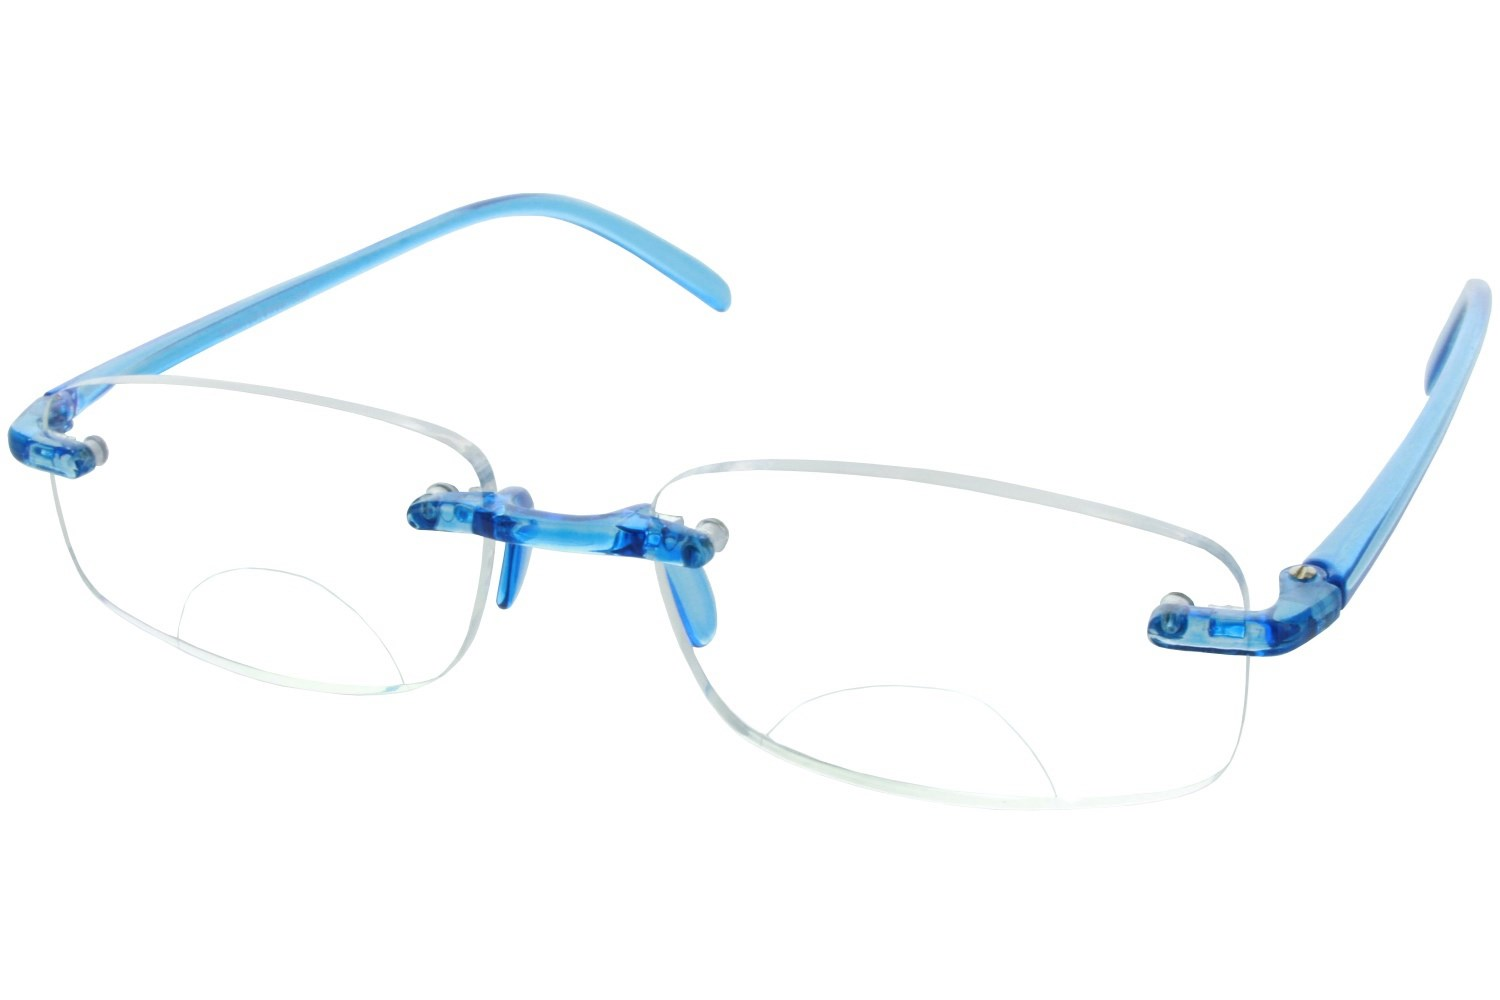 Rimless Bifocal Glasses : Computer Eyed Rimless Bifocal Reading Glasses ...